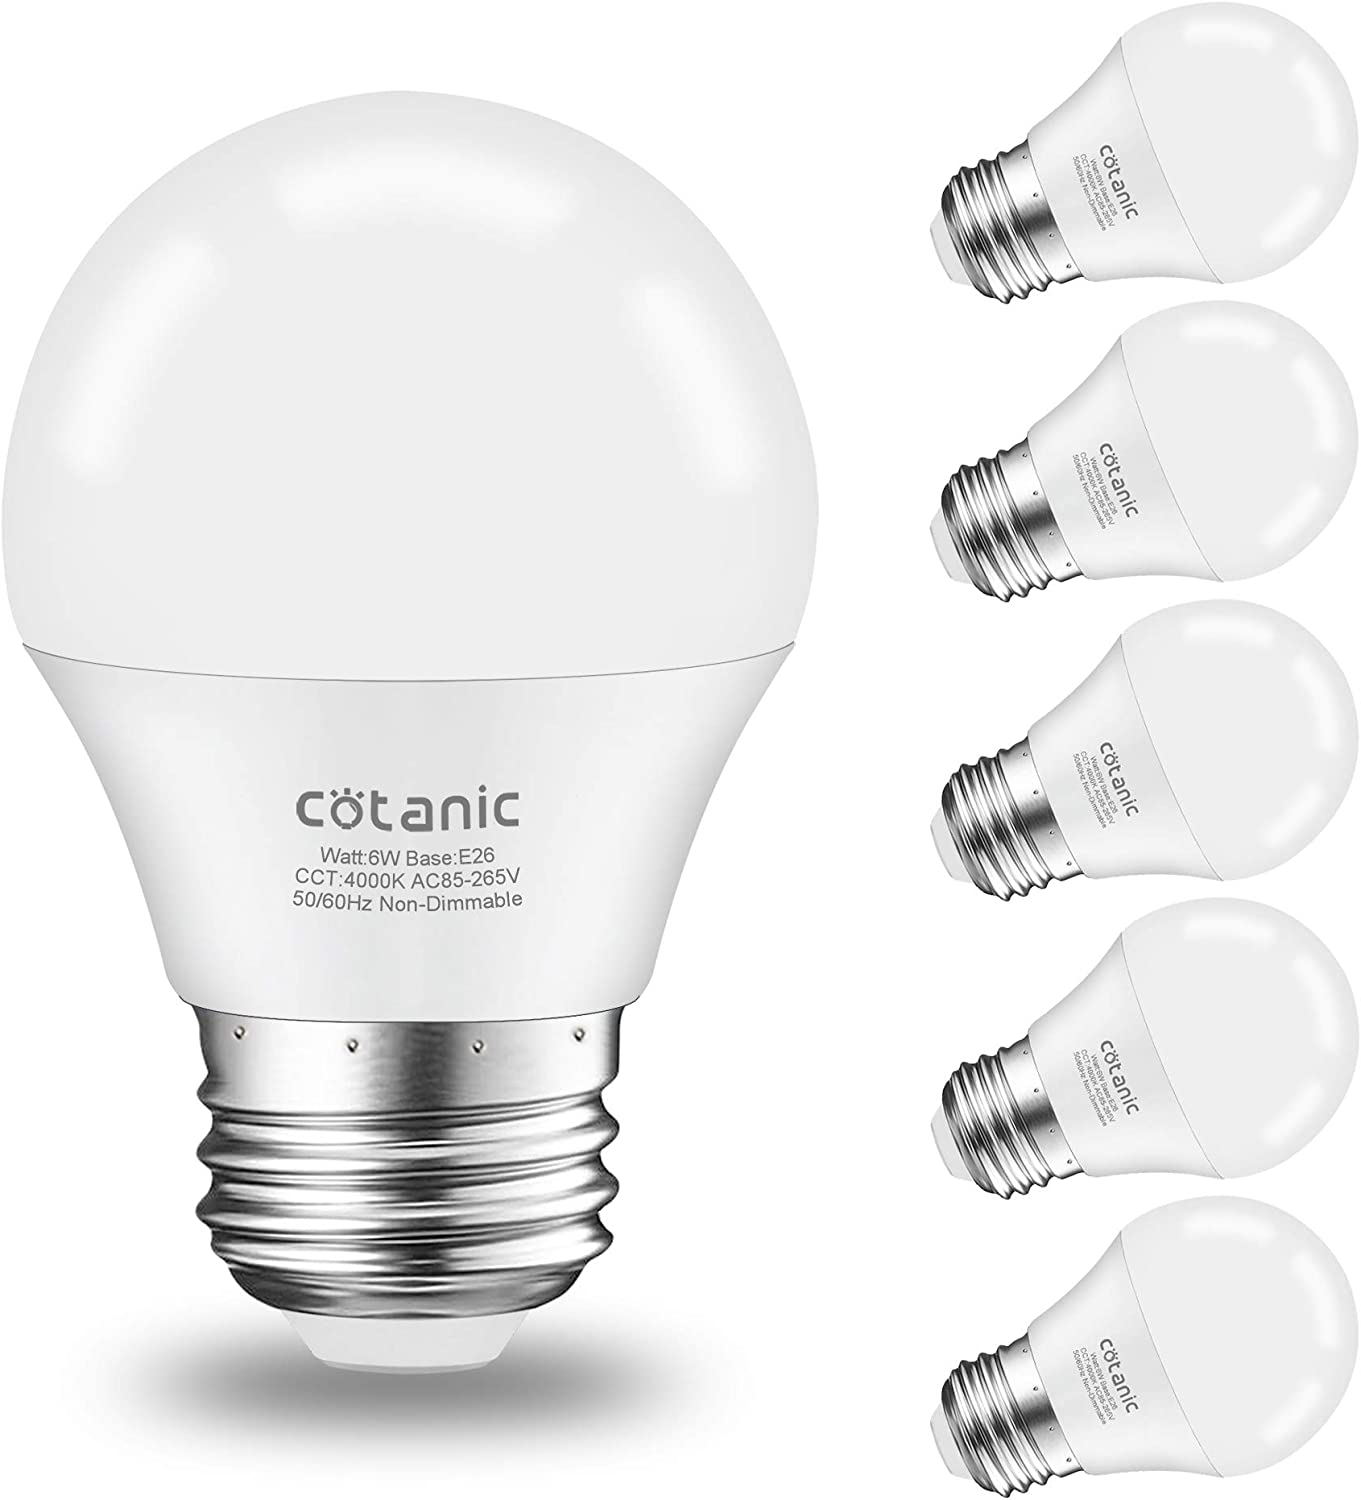 A15 LED Bulb,Cotanic Ceiling Fan Light Bulbs 6W (60W Equivalent),4000K Natural Daylight,E26 Standrad Base Light Bulb,600lm,CRI 80+ LED Globe Shape Bulb,Non-Dimmable,6 Packs